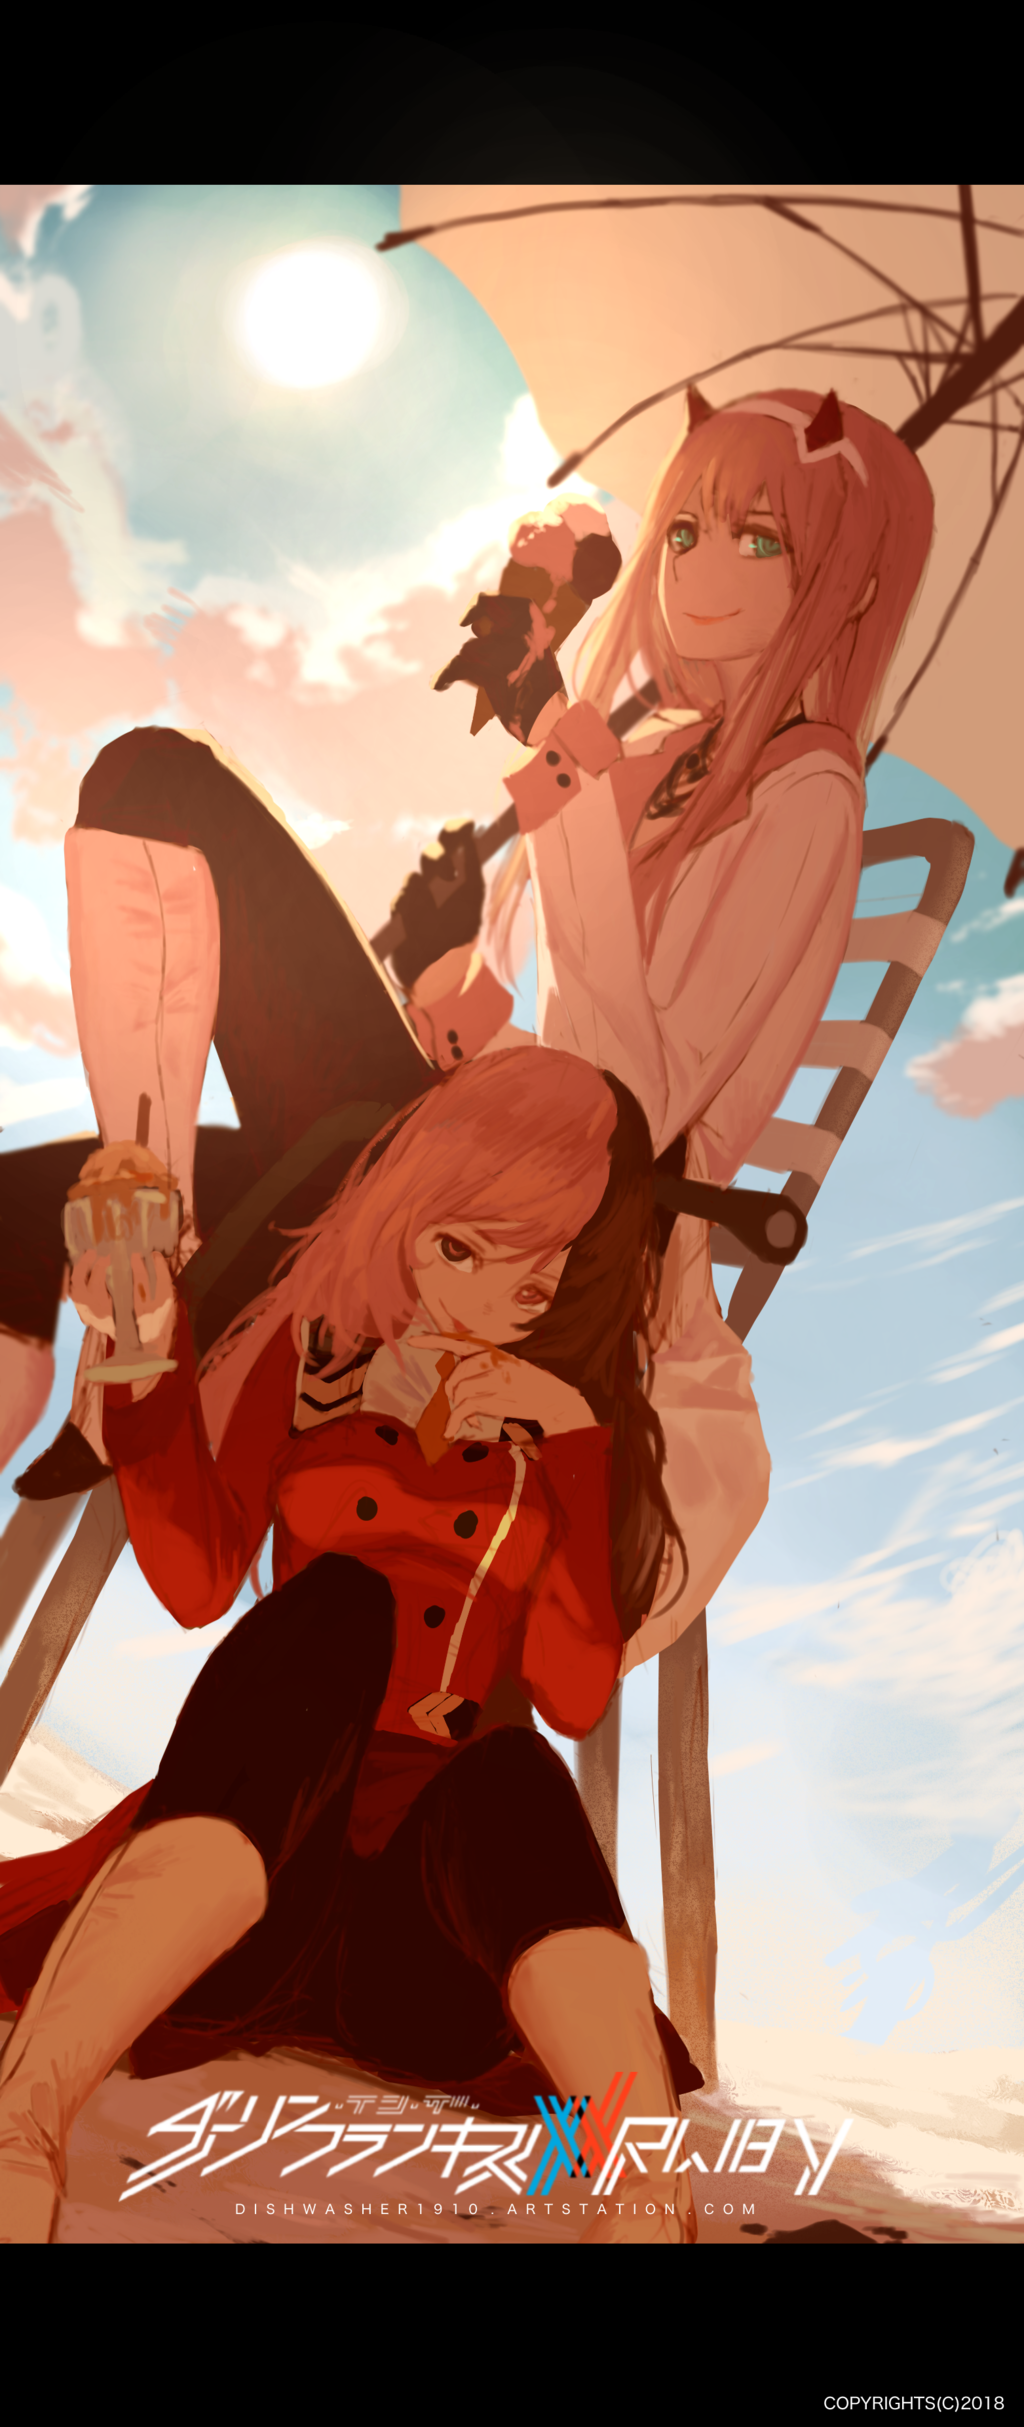 2girls absurdres beach clouds cloudy_sky cosplay costume_switch darling_in_the_franxx dishwasher1910 food glass highres ice_cream ice_cream_cone multiple_girls neo_(rwby) parasol school_uniform sky smile smug umbrella zero_two_(darling_in_the_franxx)